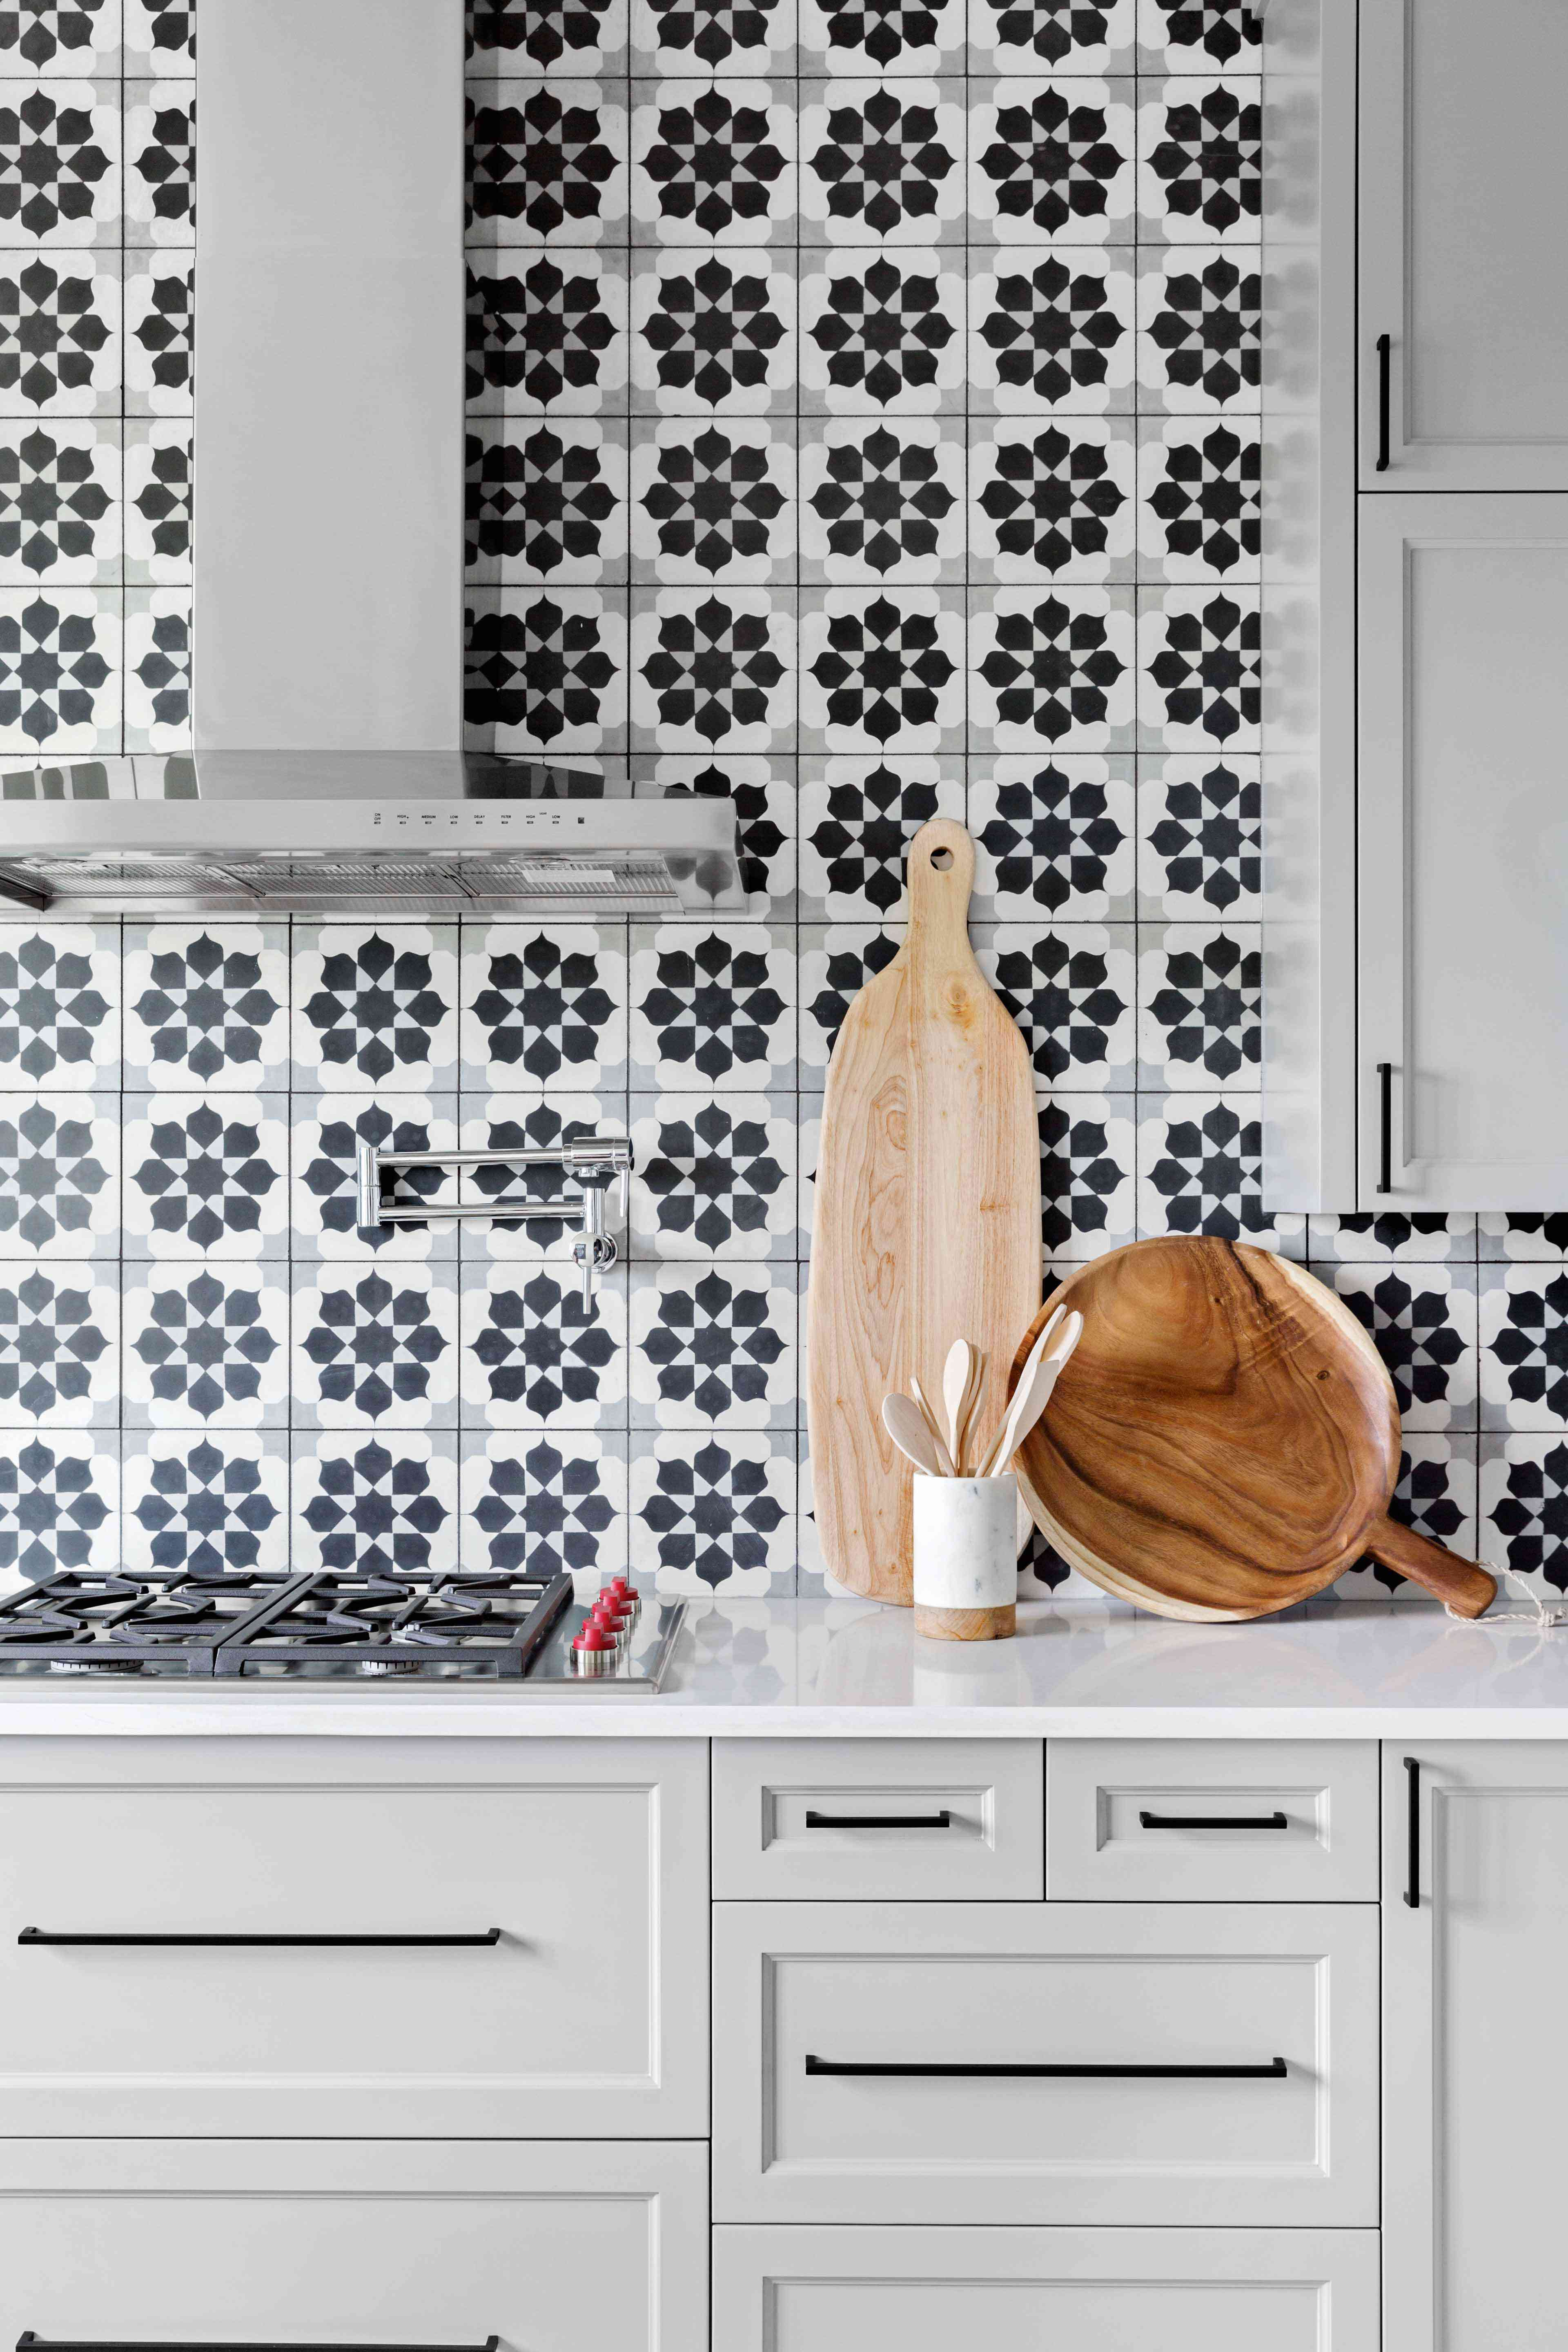 A kitchen with gray cabinets and a printed tile backsplash